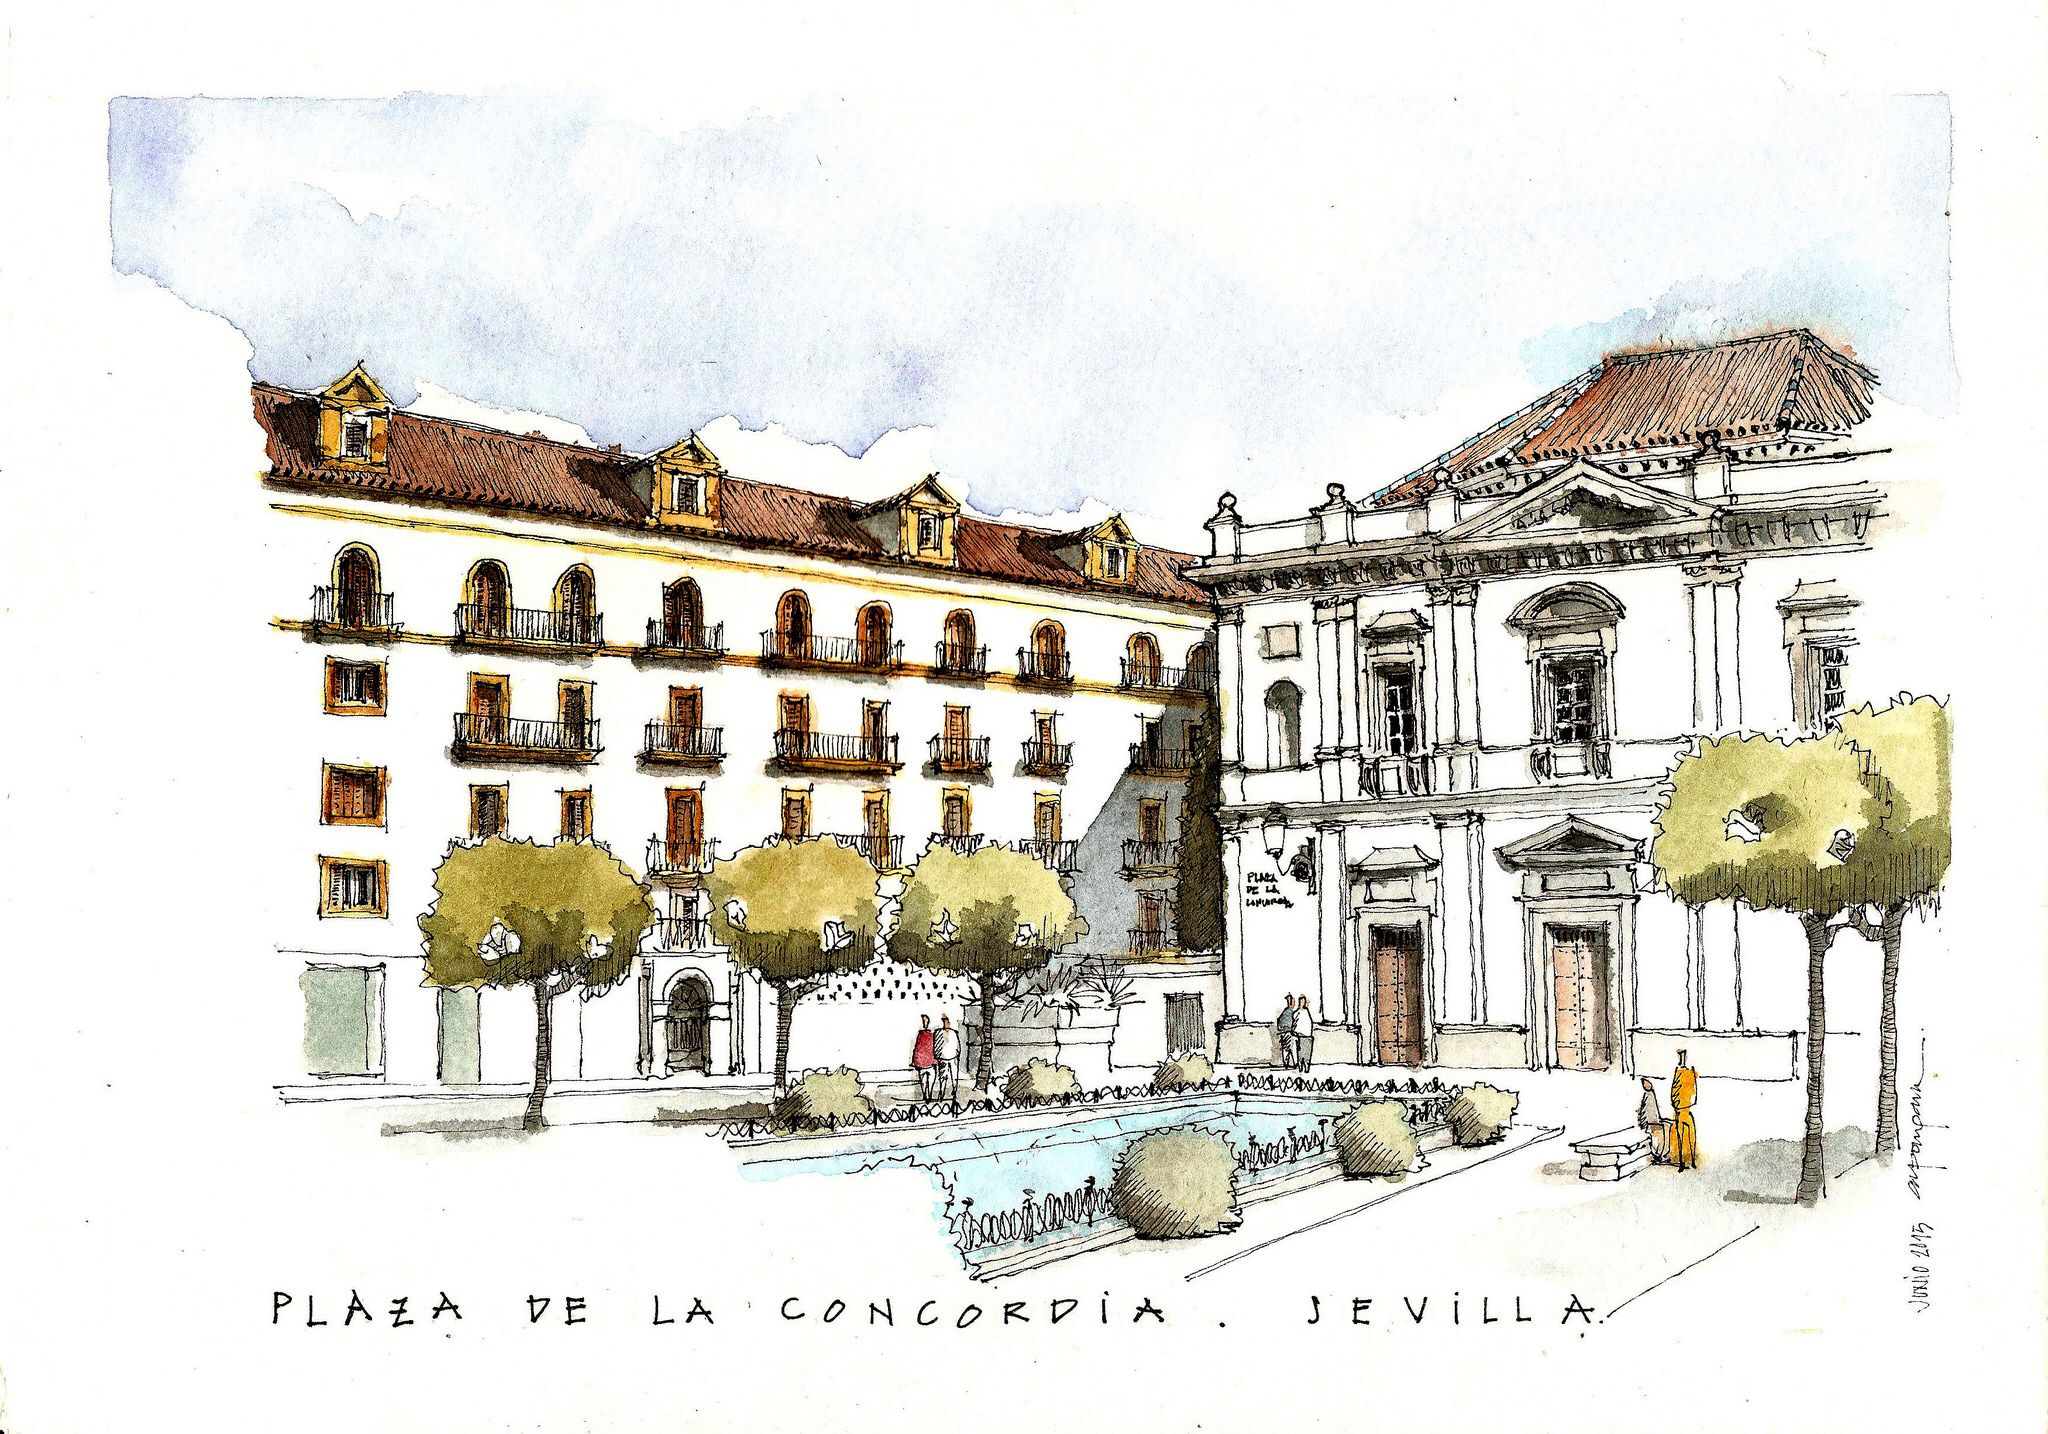 Plaza De La Concordia plaza de la concordia   urban sketching, building painting